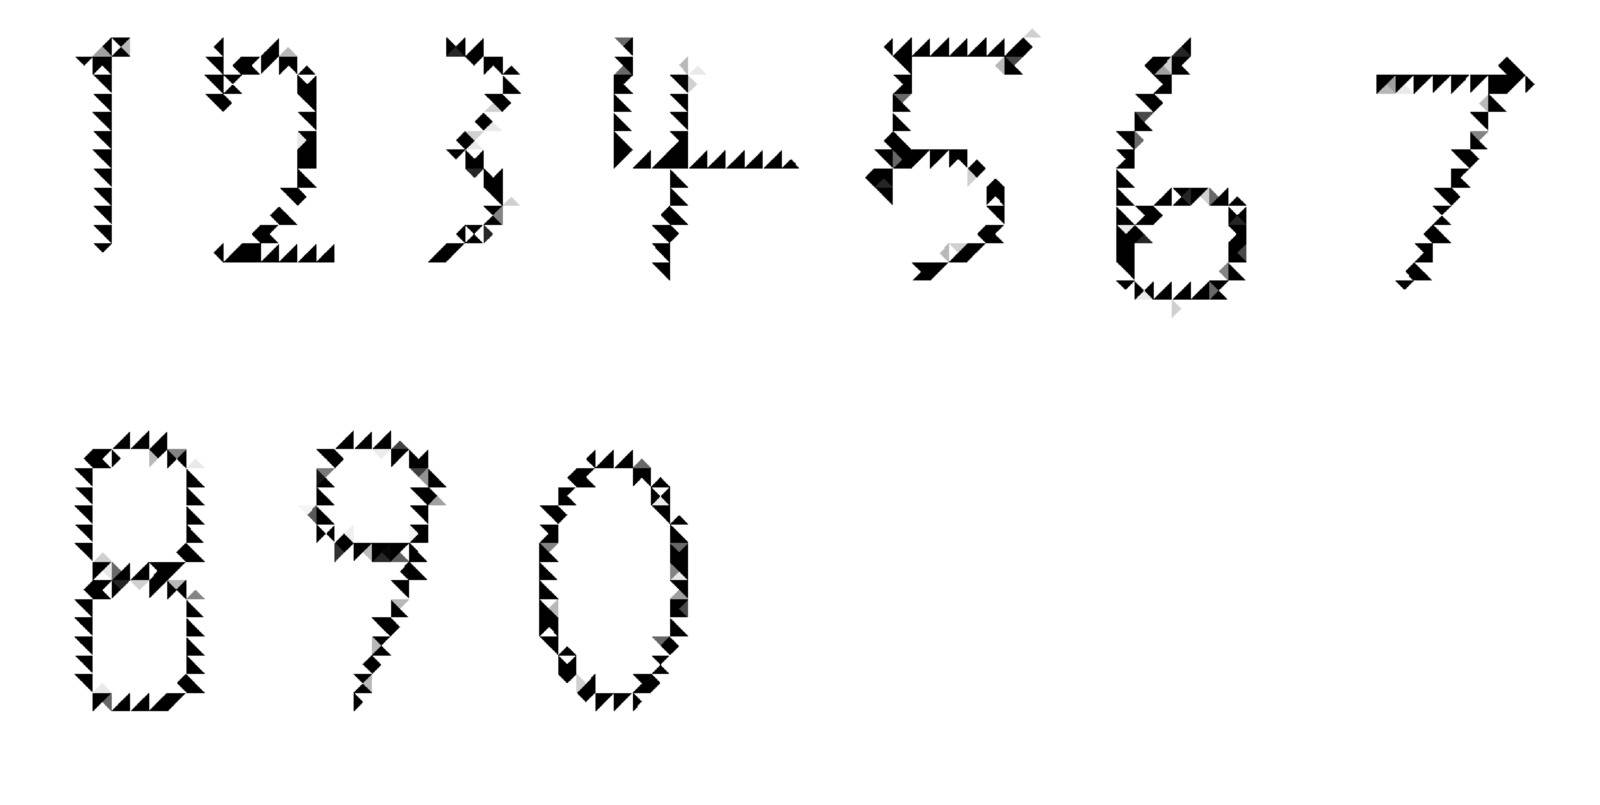 A picture of a full set of numbers in a unique style of lettering.